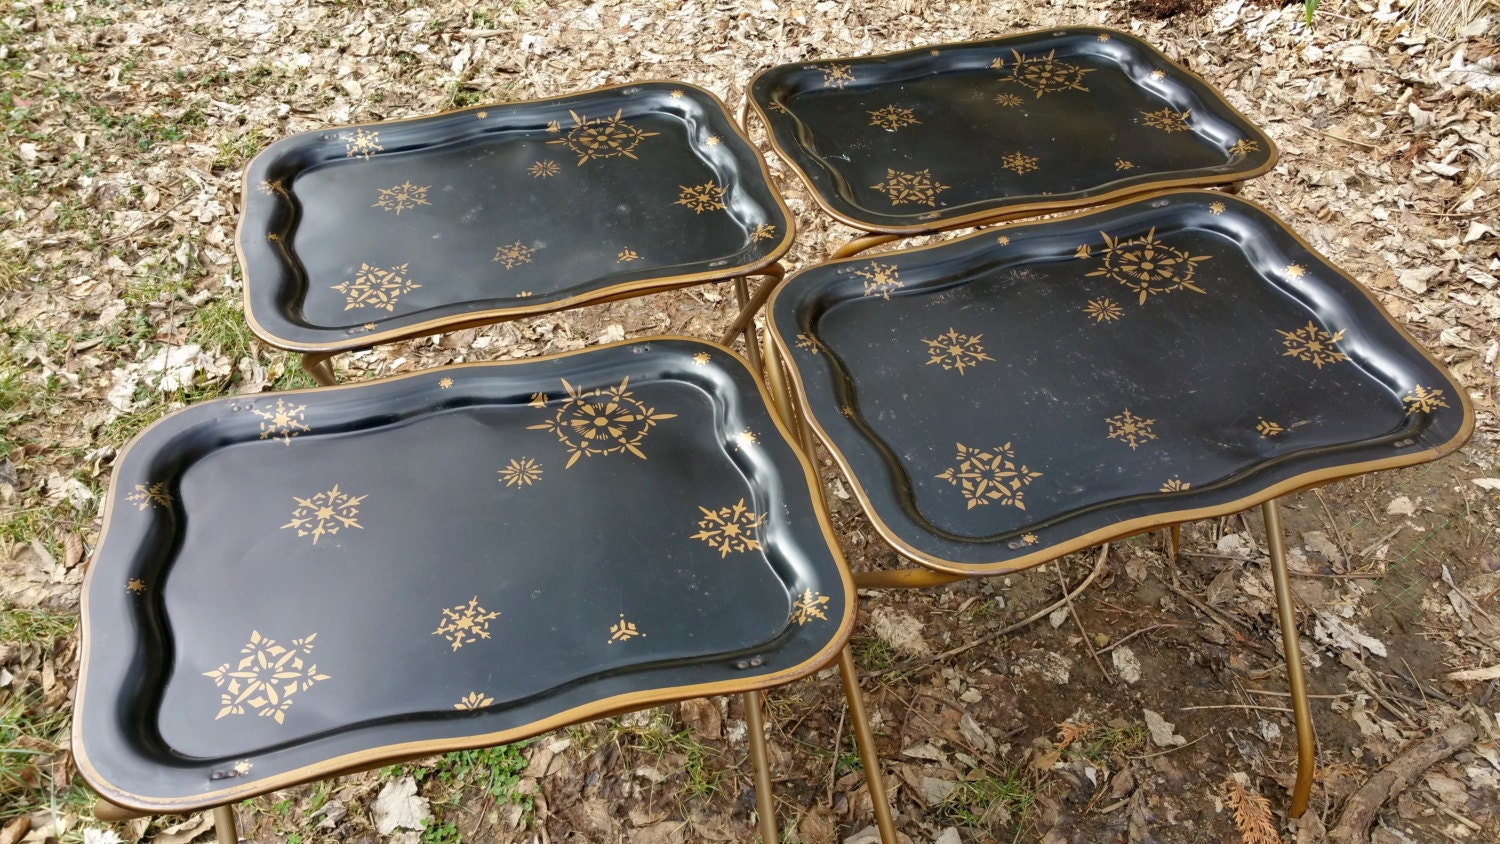 Metal TV Tray Tables Set Of Four With Stand Black Gold Atomic Design By  GladStoneatHome On